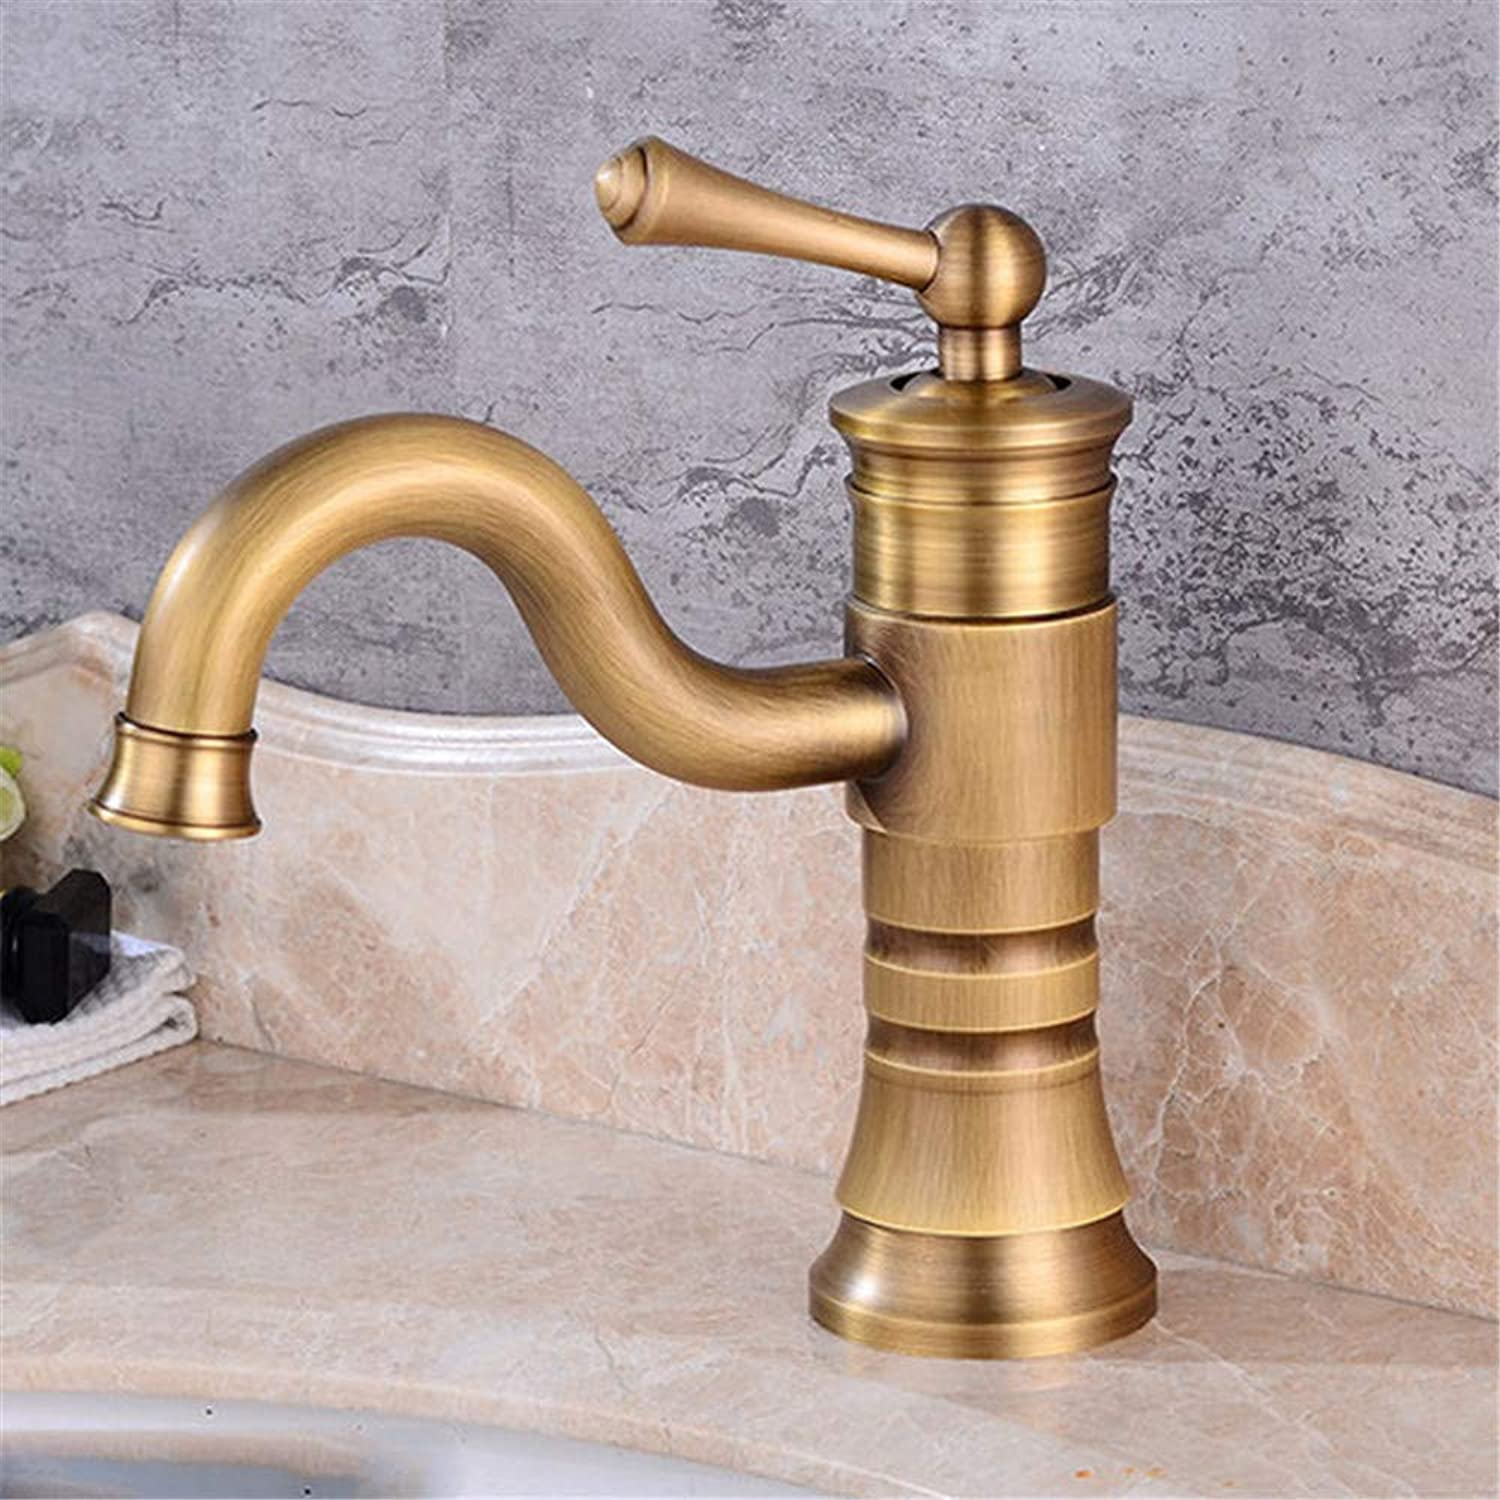 YAWEDA Retro Copper gold Silver Ancient Short Bathroom Tank Kitchen Tap Tank Single Hole Single Hand Cold and Hot Water Mixer Single Connection,Antique Short Money